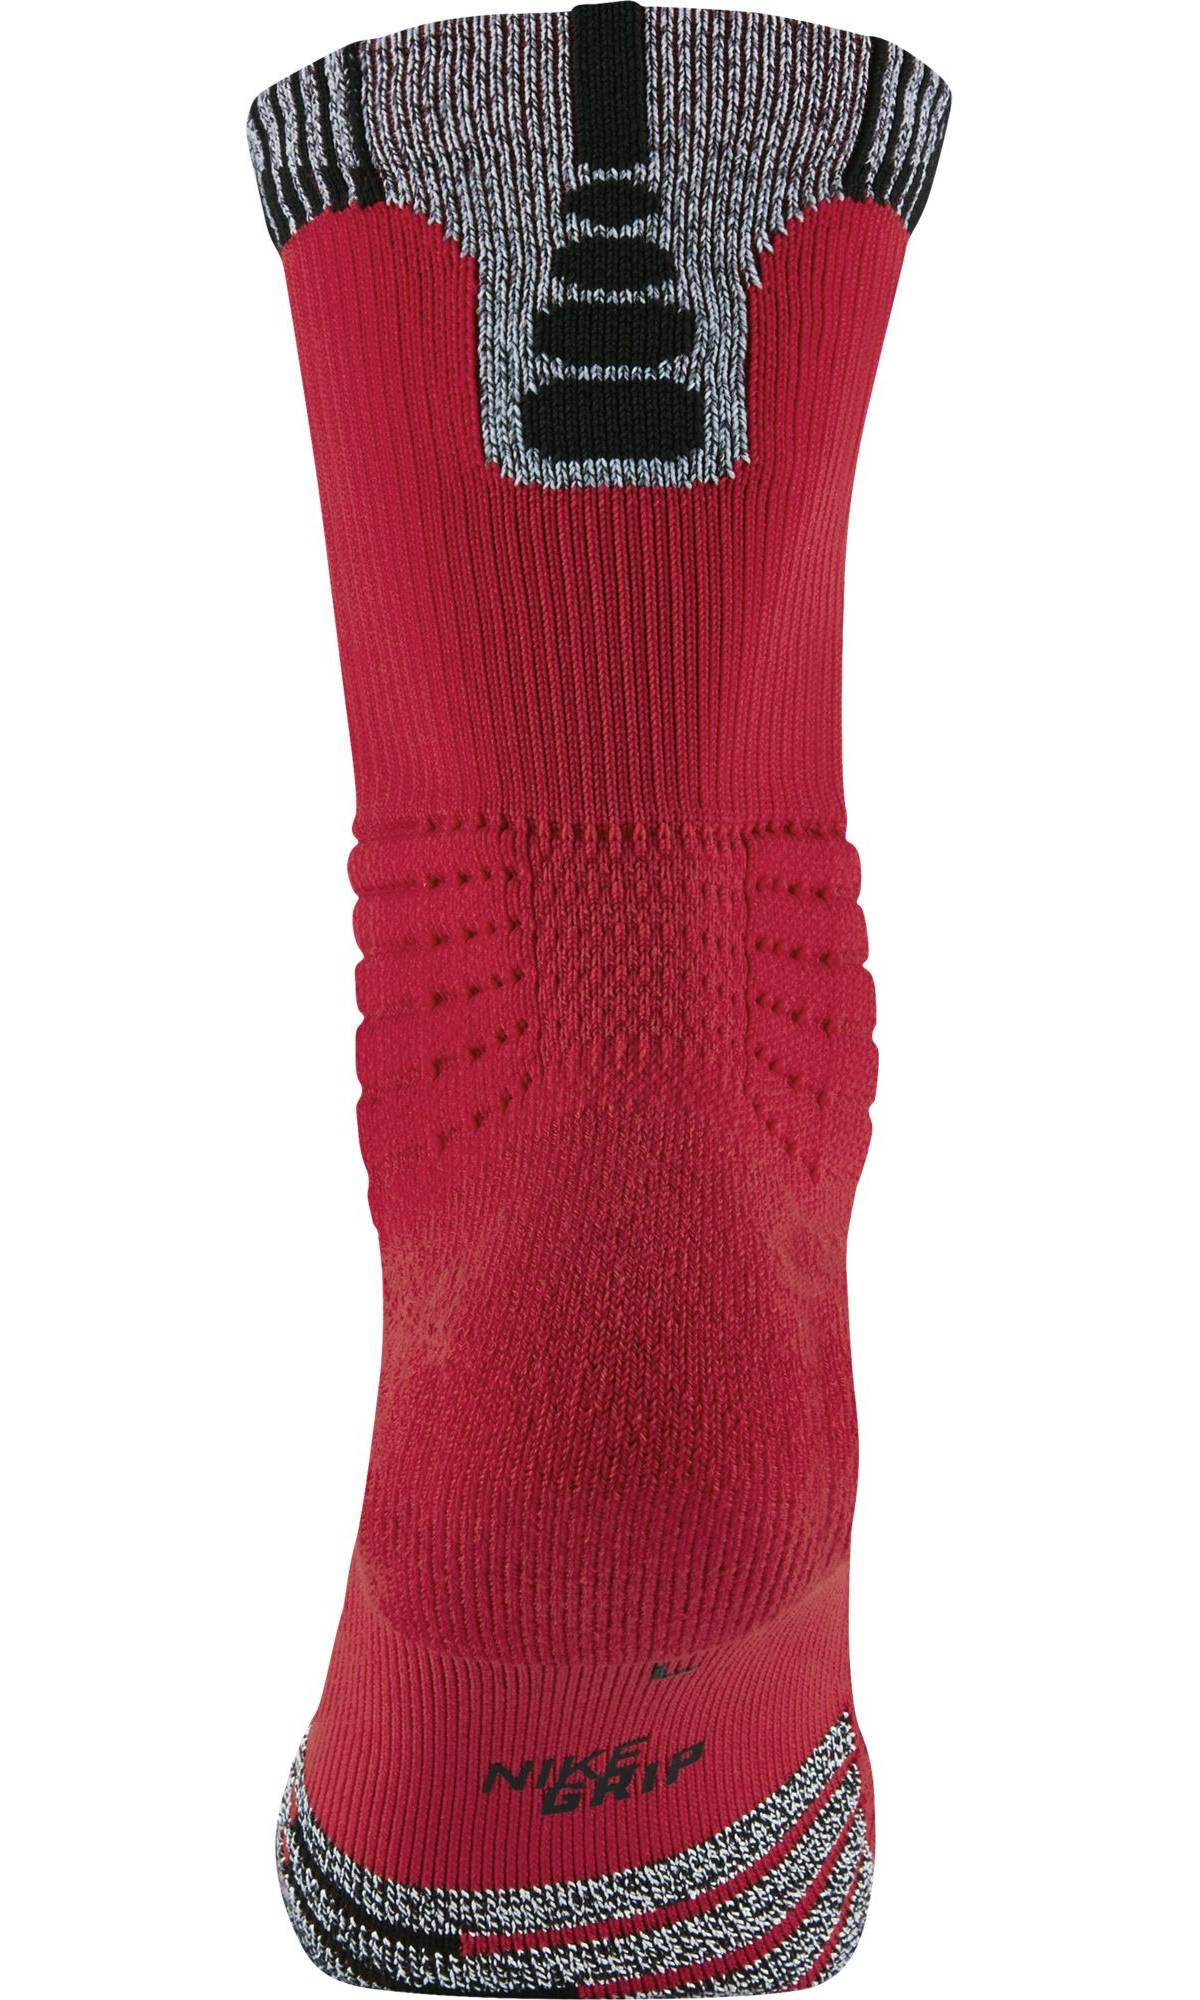 Nike Basketball Unisex Nikegrip Versatility Crew Socks (1 Pair) - University Red/Black